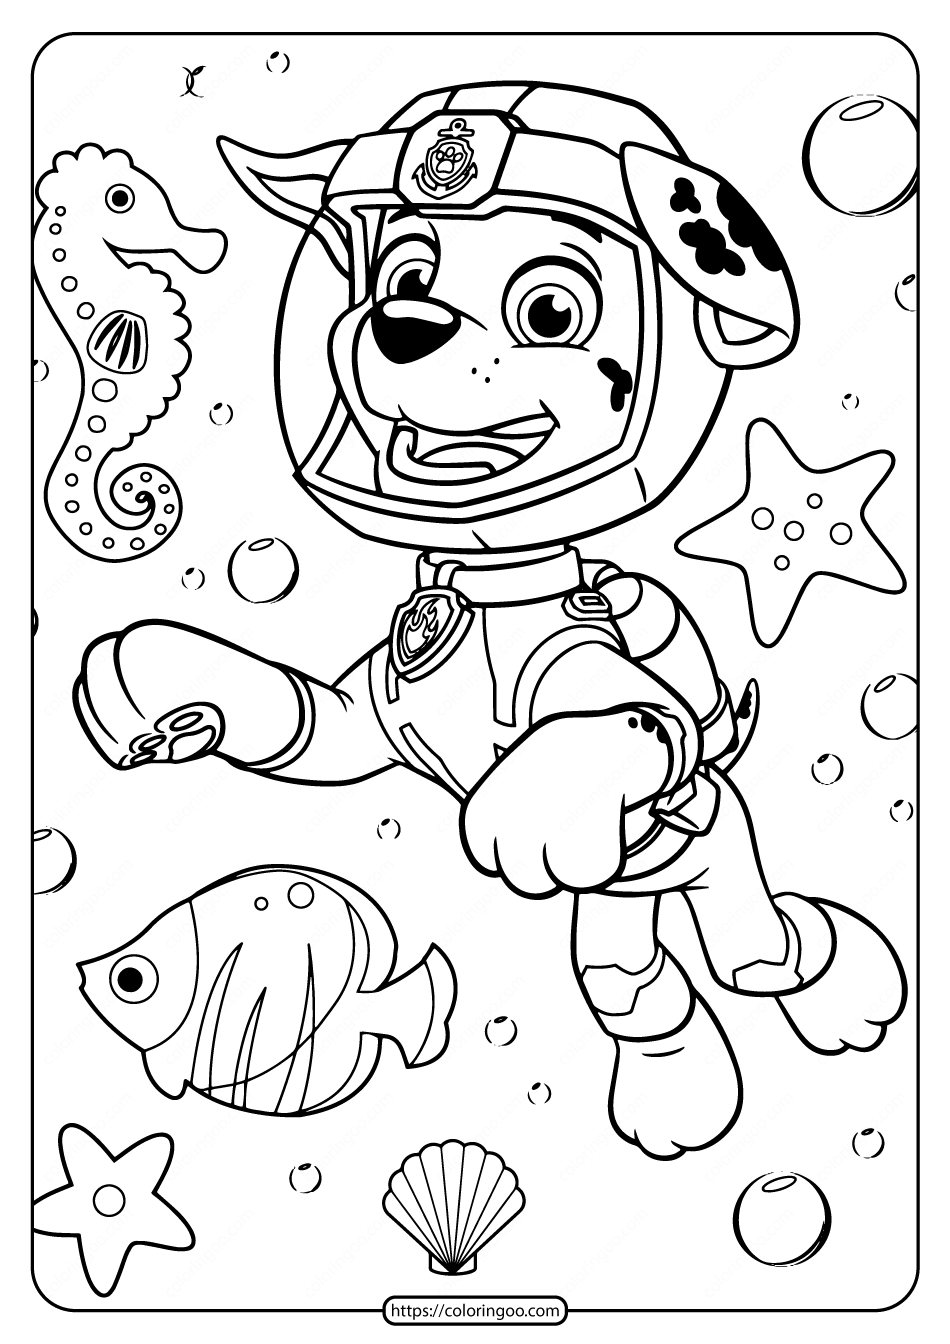 color pages printable free printable tangled coloring pages for kids cool2bkids printable color pages